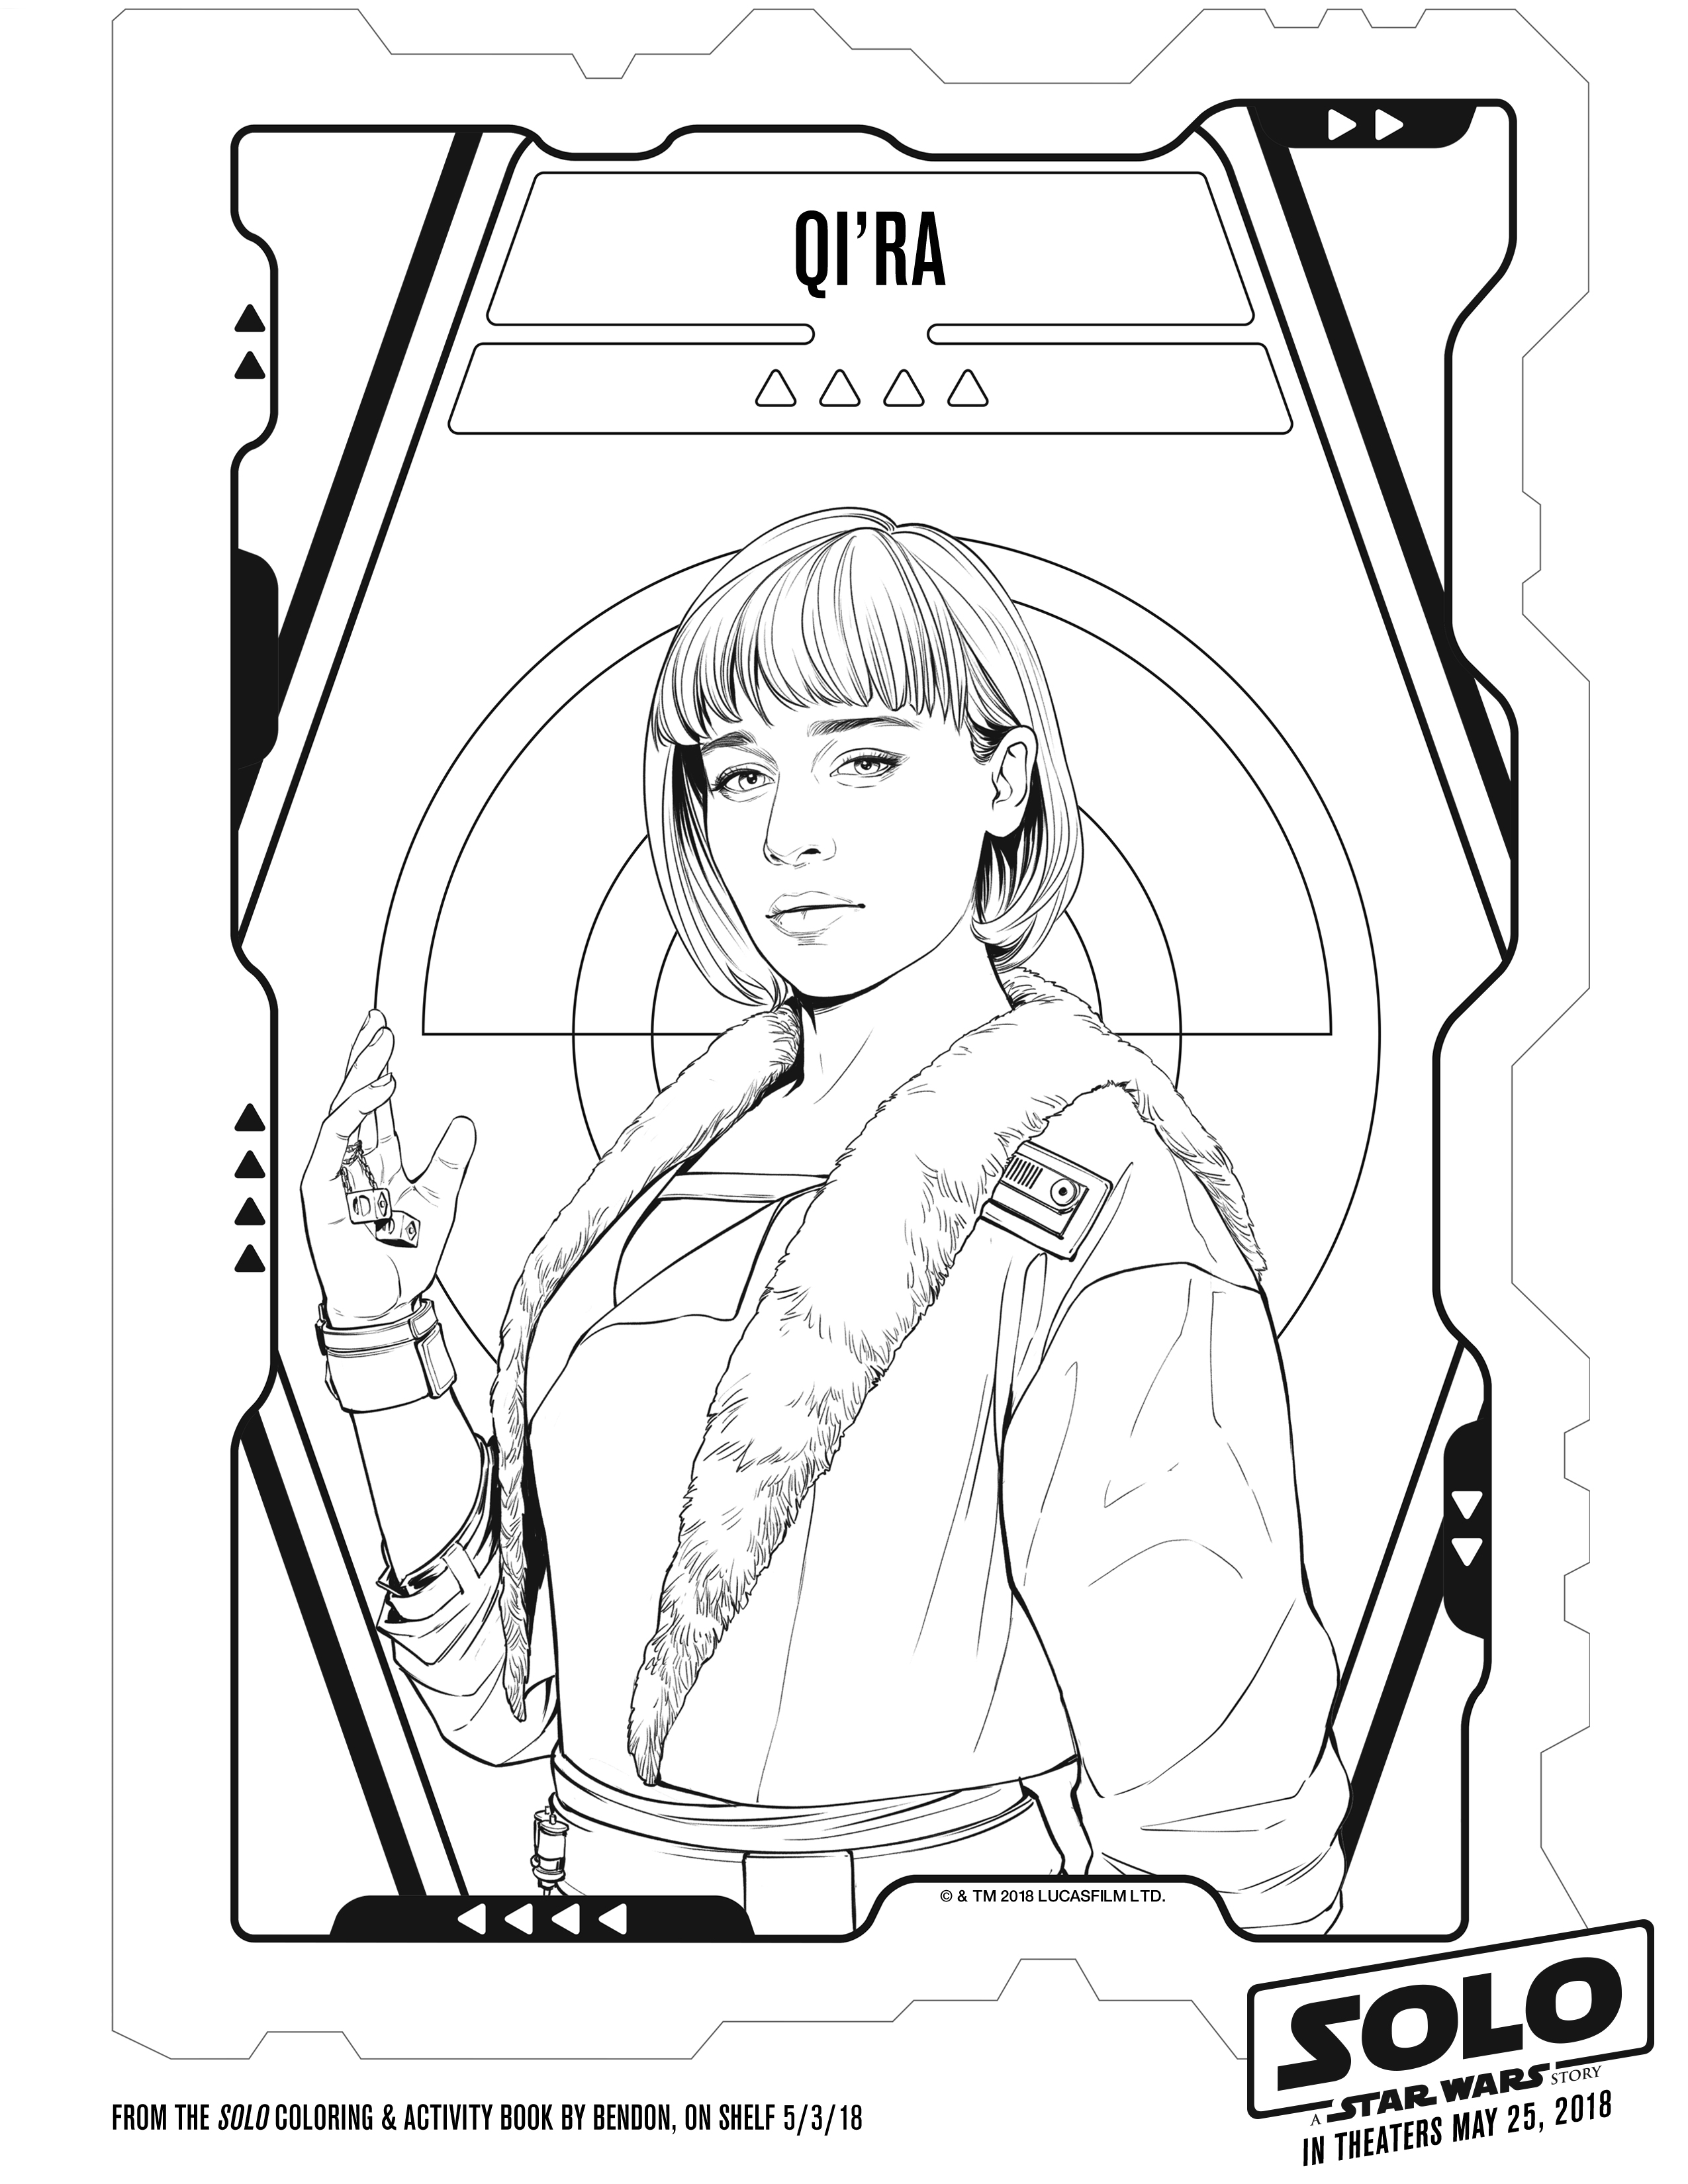 photograph relating to Star Wars Printable Activities called Solo: A Star Wars Tale Coloring Web pages and Actions Delighted